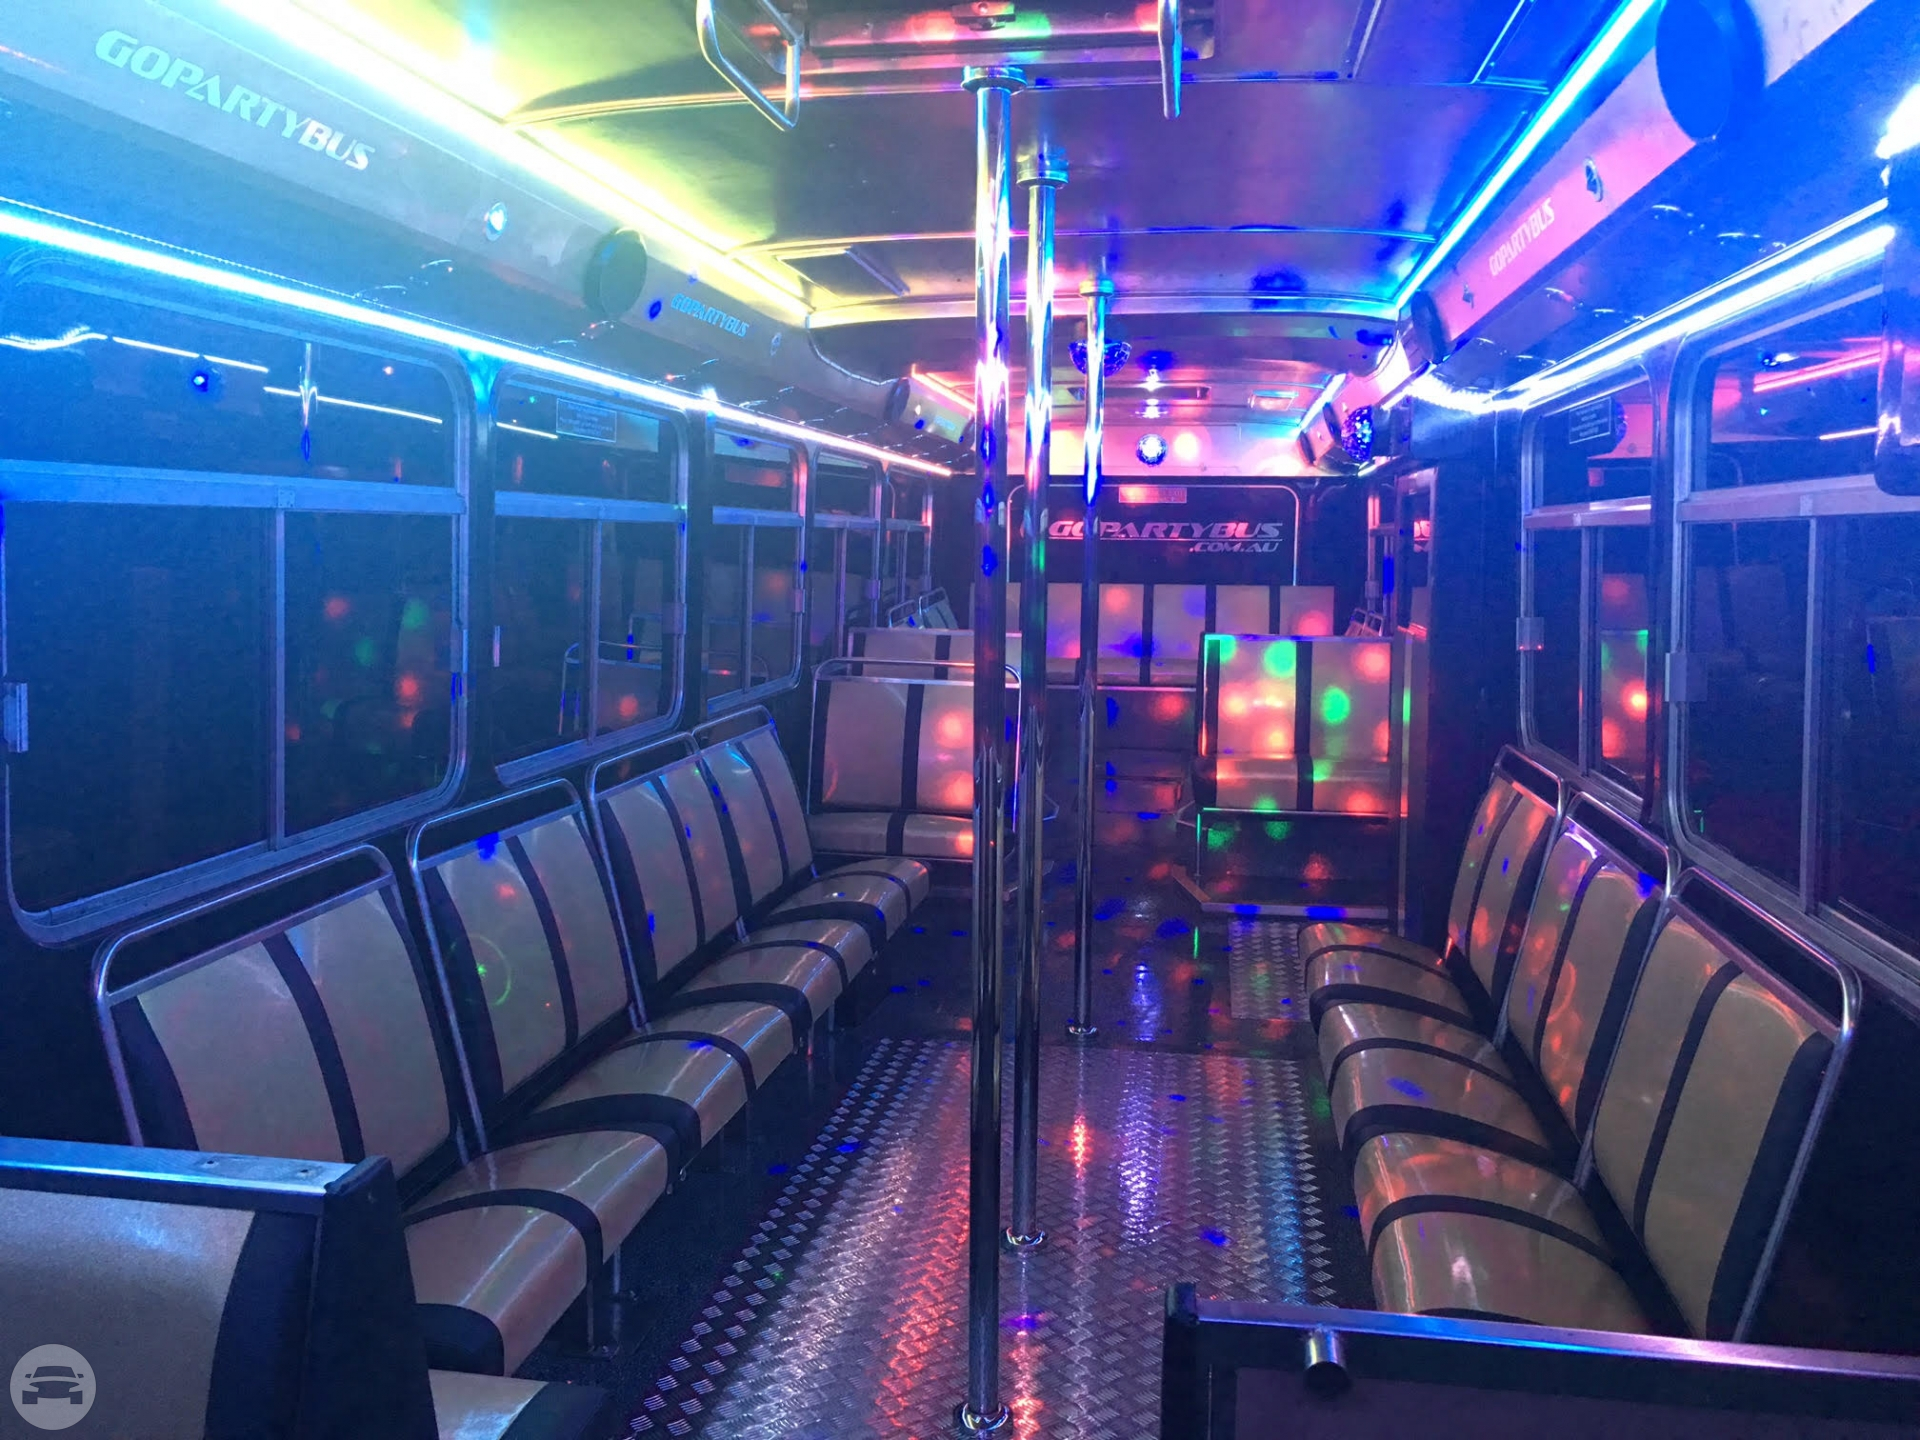 45 passenger Gold Party Bus Party Limo Bus  / Perth WA 6000, Australia   / Hourly AUD$ 0.00